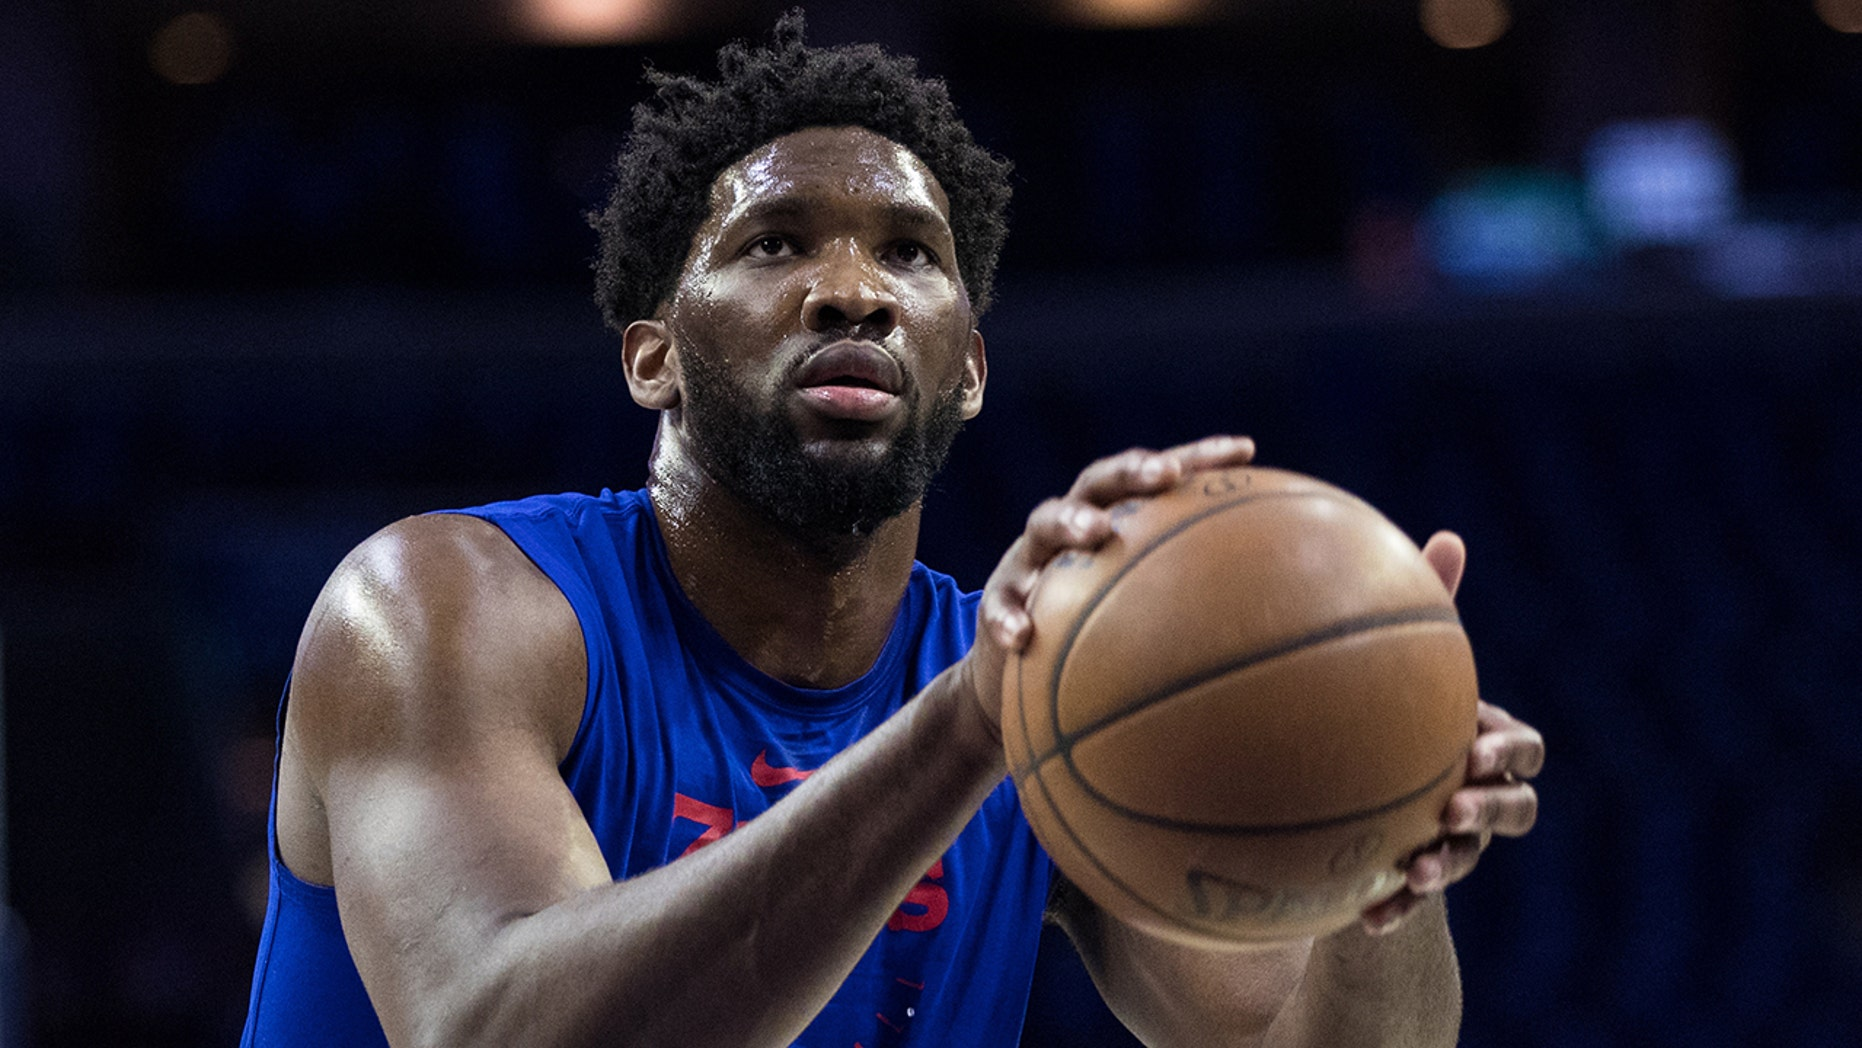 Westlake Legal Group Joel-Embiid-RT Philadelphia 79ers star Joel Embiid calls Brooklyn Nets' Jared Dudley 'a nobody' after on-court scrum fox-news/sports/nba/philadelphia-76ers fox-news/sports/nba/brooklyn-nets fox-news/sports/nba-playoffs fox-news/sports/nba fox-news/sports fox news fnc/sports fnc David Aaro article 6de67439-0374-5e3b-972b-bf4a2aa0a8cd